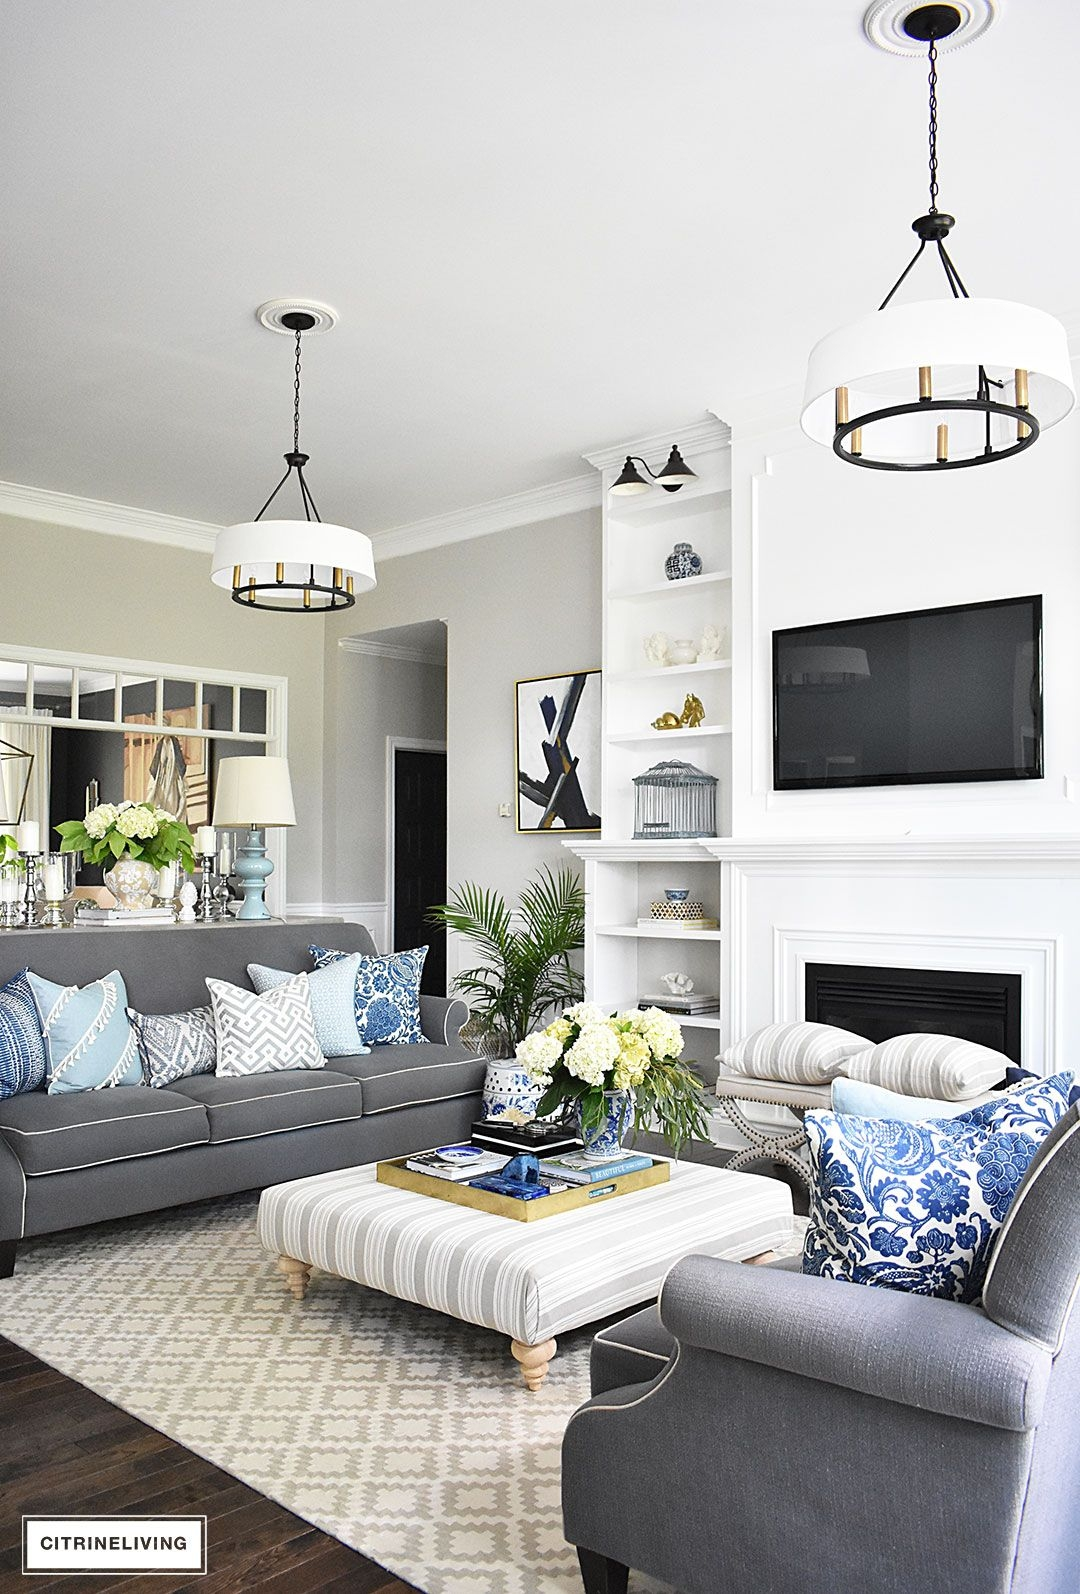 20 Fresh Ideas For Decorating With Blue And White Pinterest – layjao